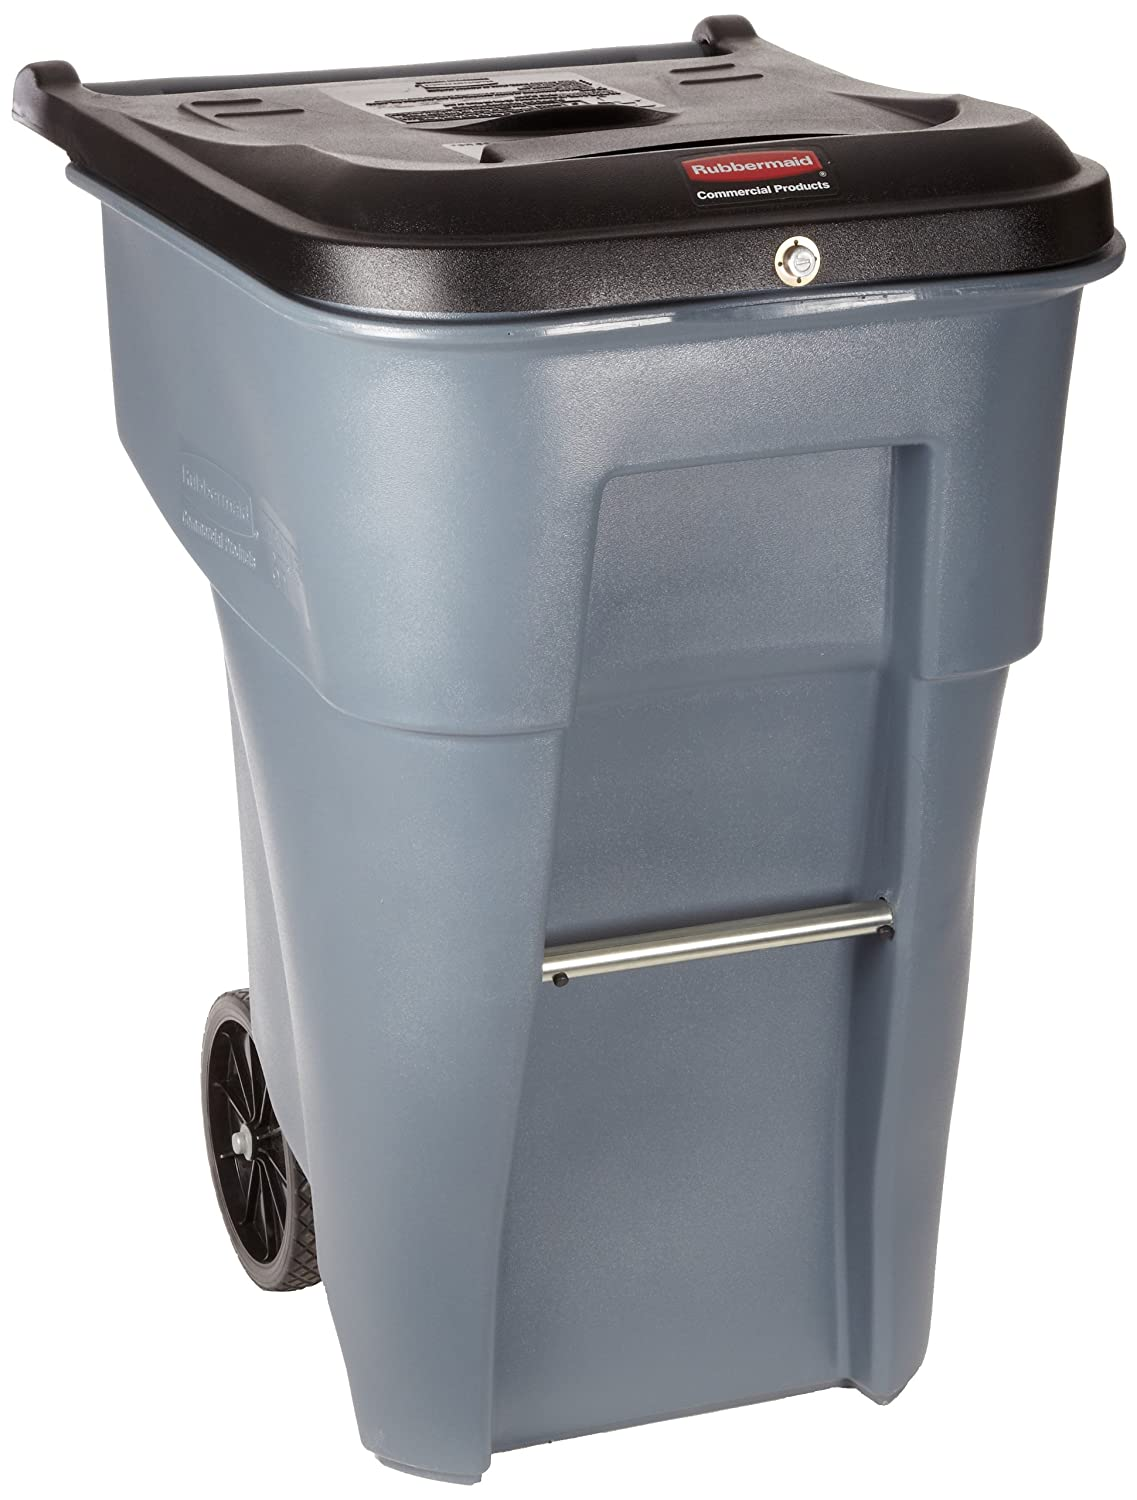 Amazon.com: Rubbermaid Commercial Products BRUTE Step-On Rollout ...